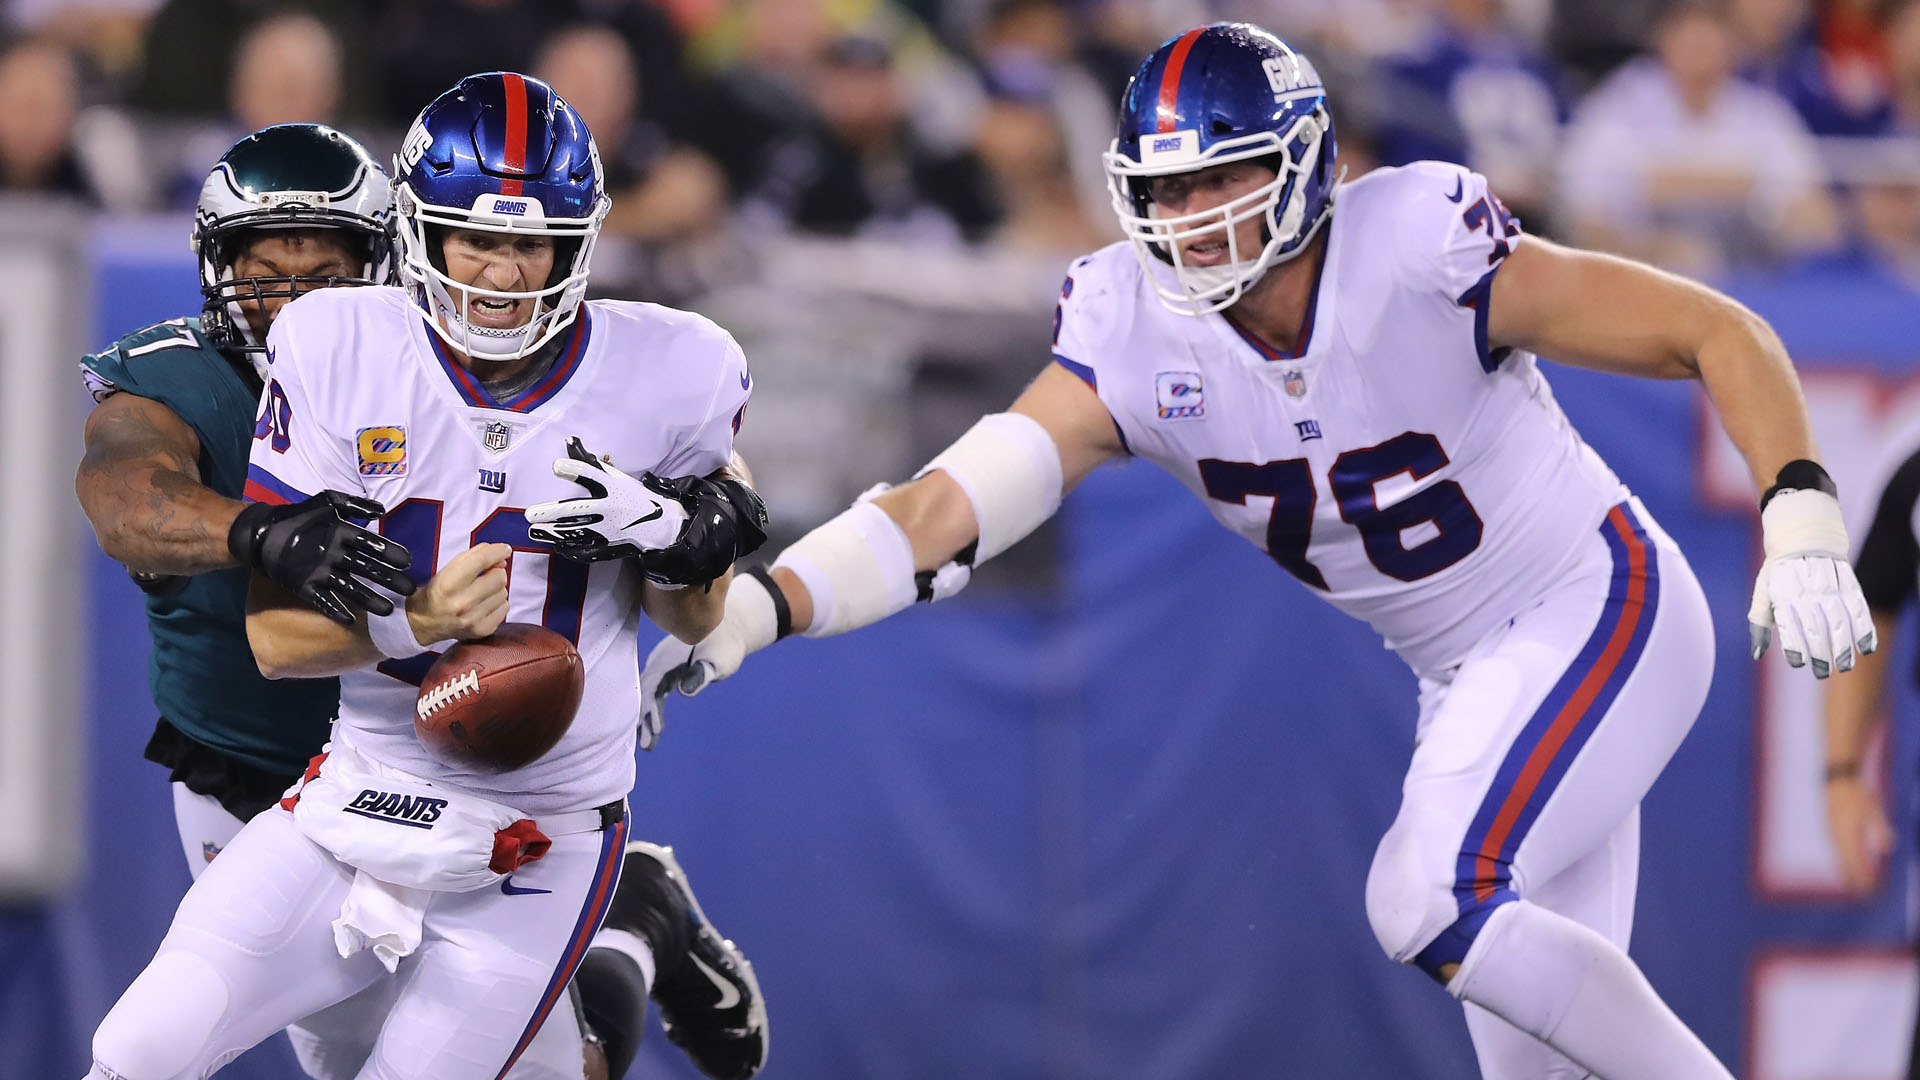 Eli Manning on struggles: 'I know I can play better'